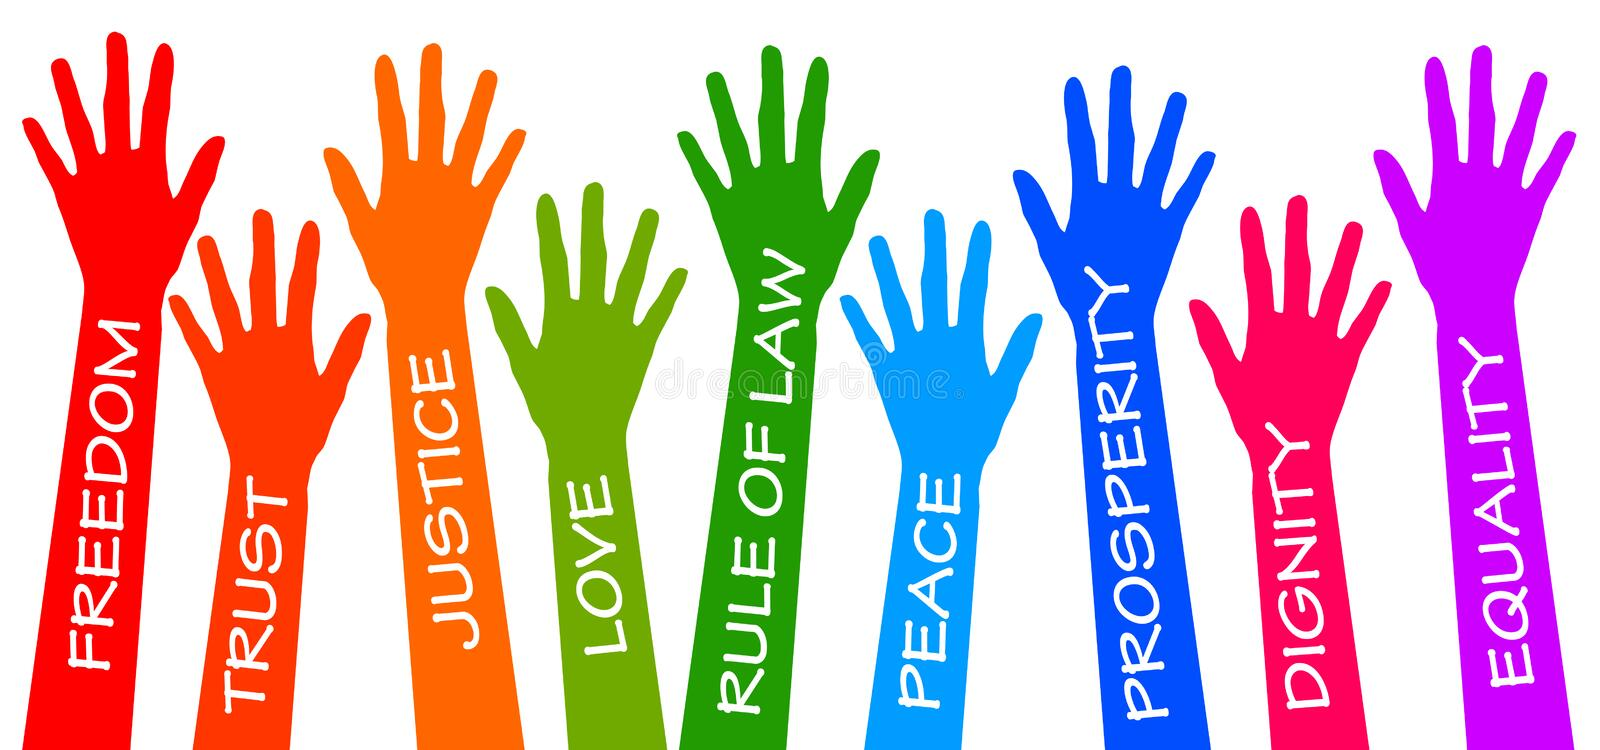 Humanity. Hands with important aspects of life and humanity